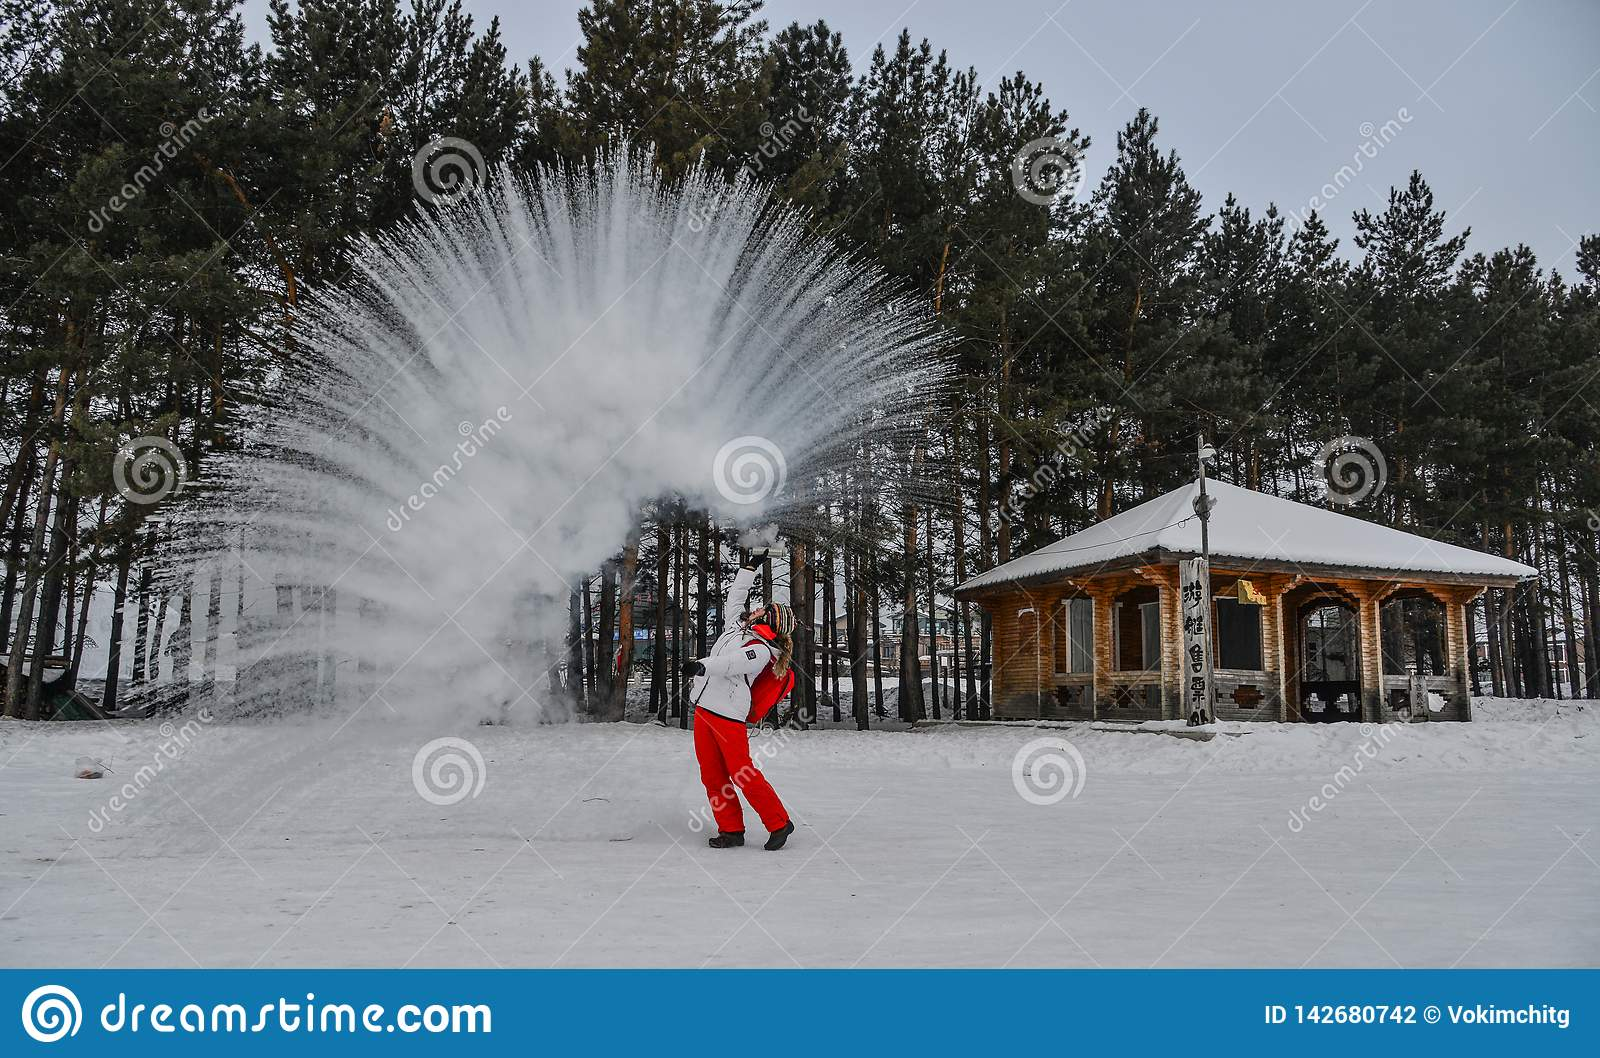 A tourist throwing hot water at winter park